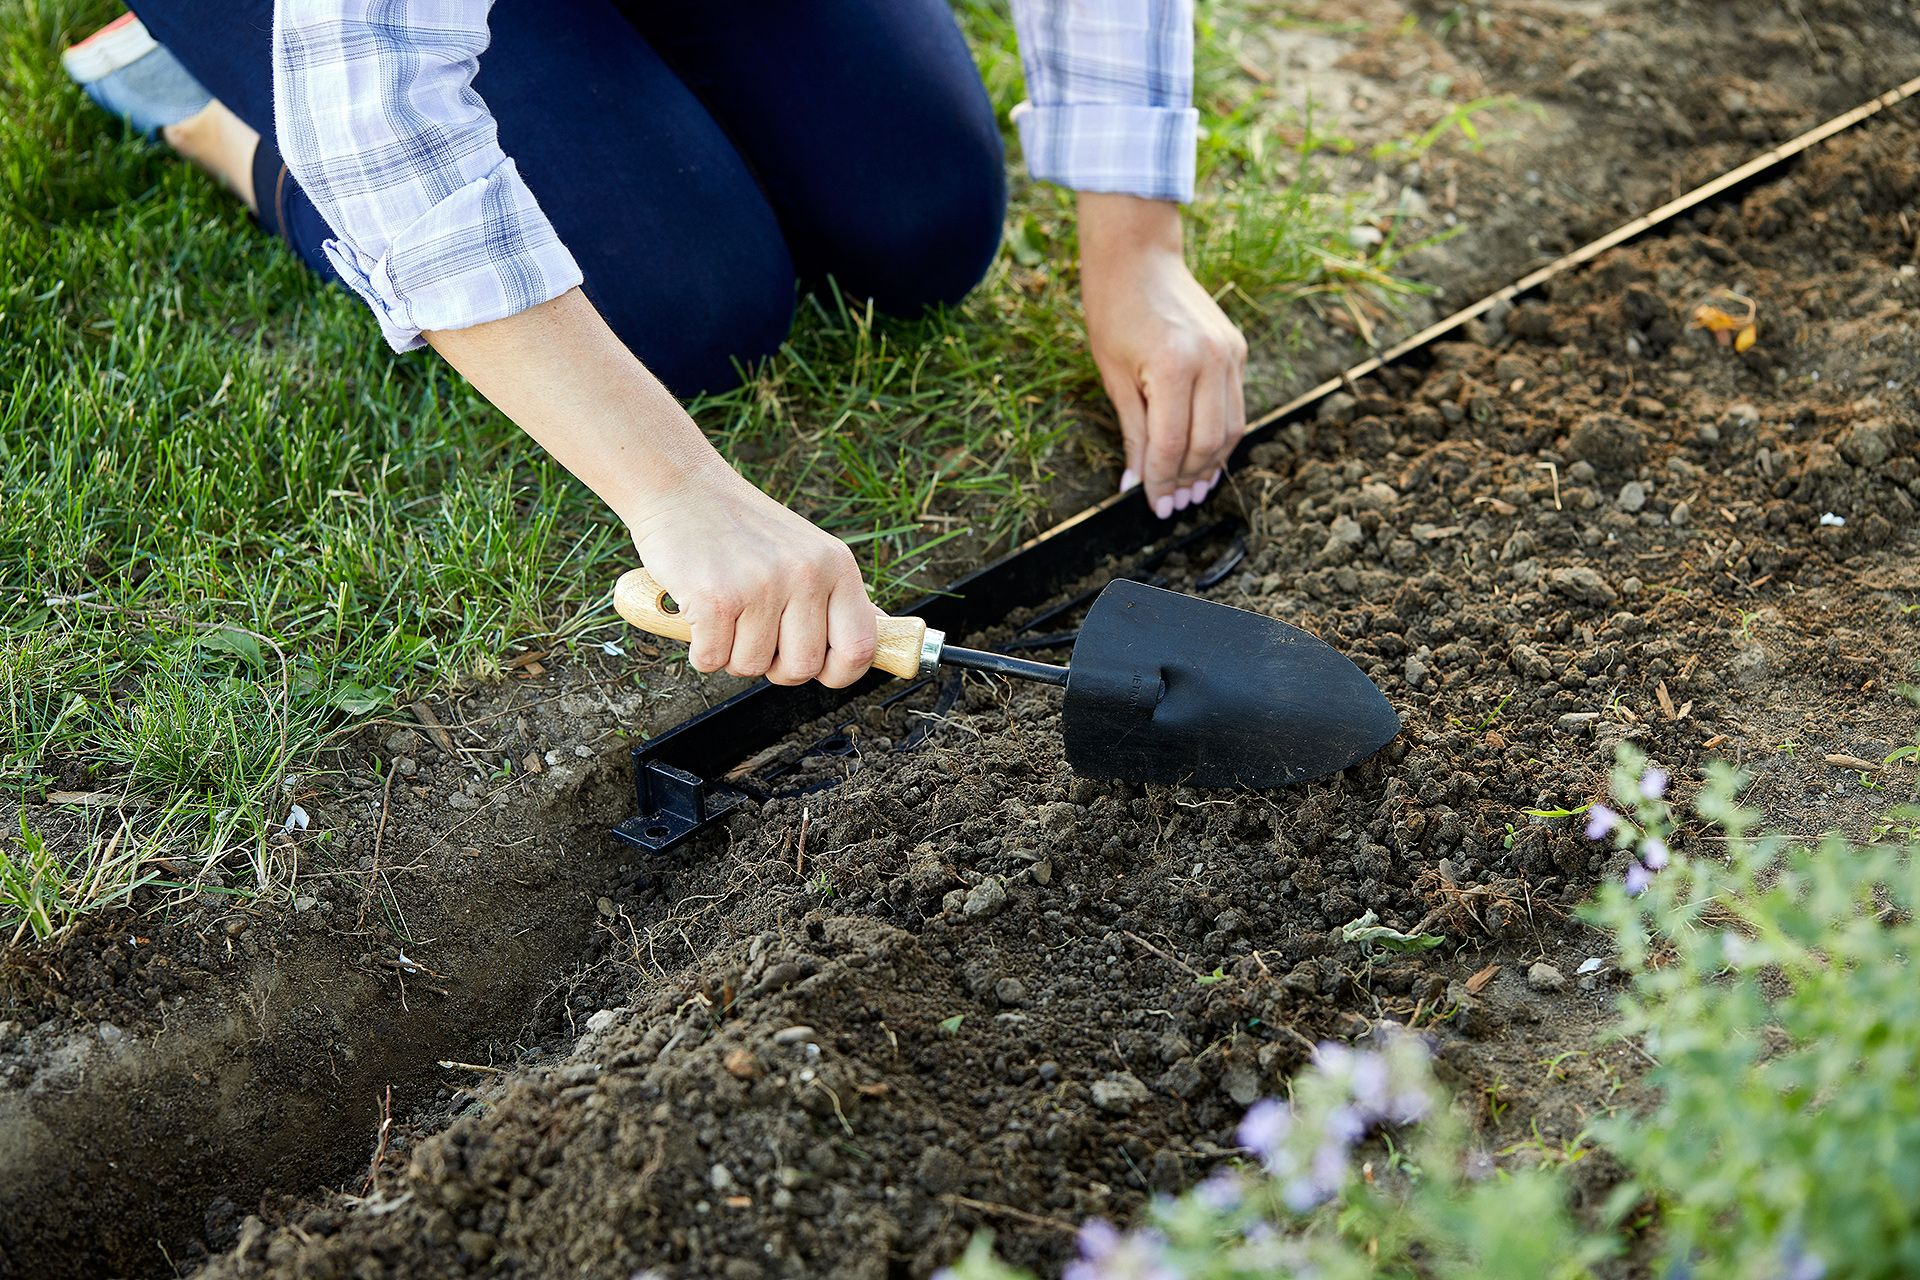 A little landscaping can go a long way toward making your